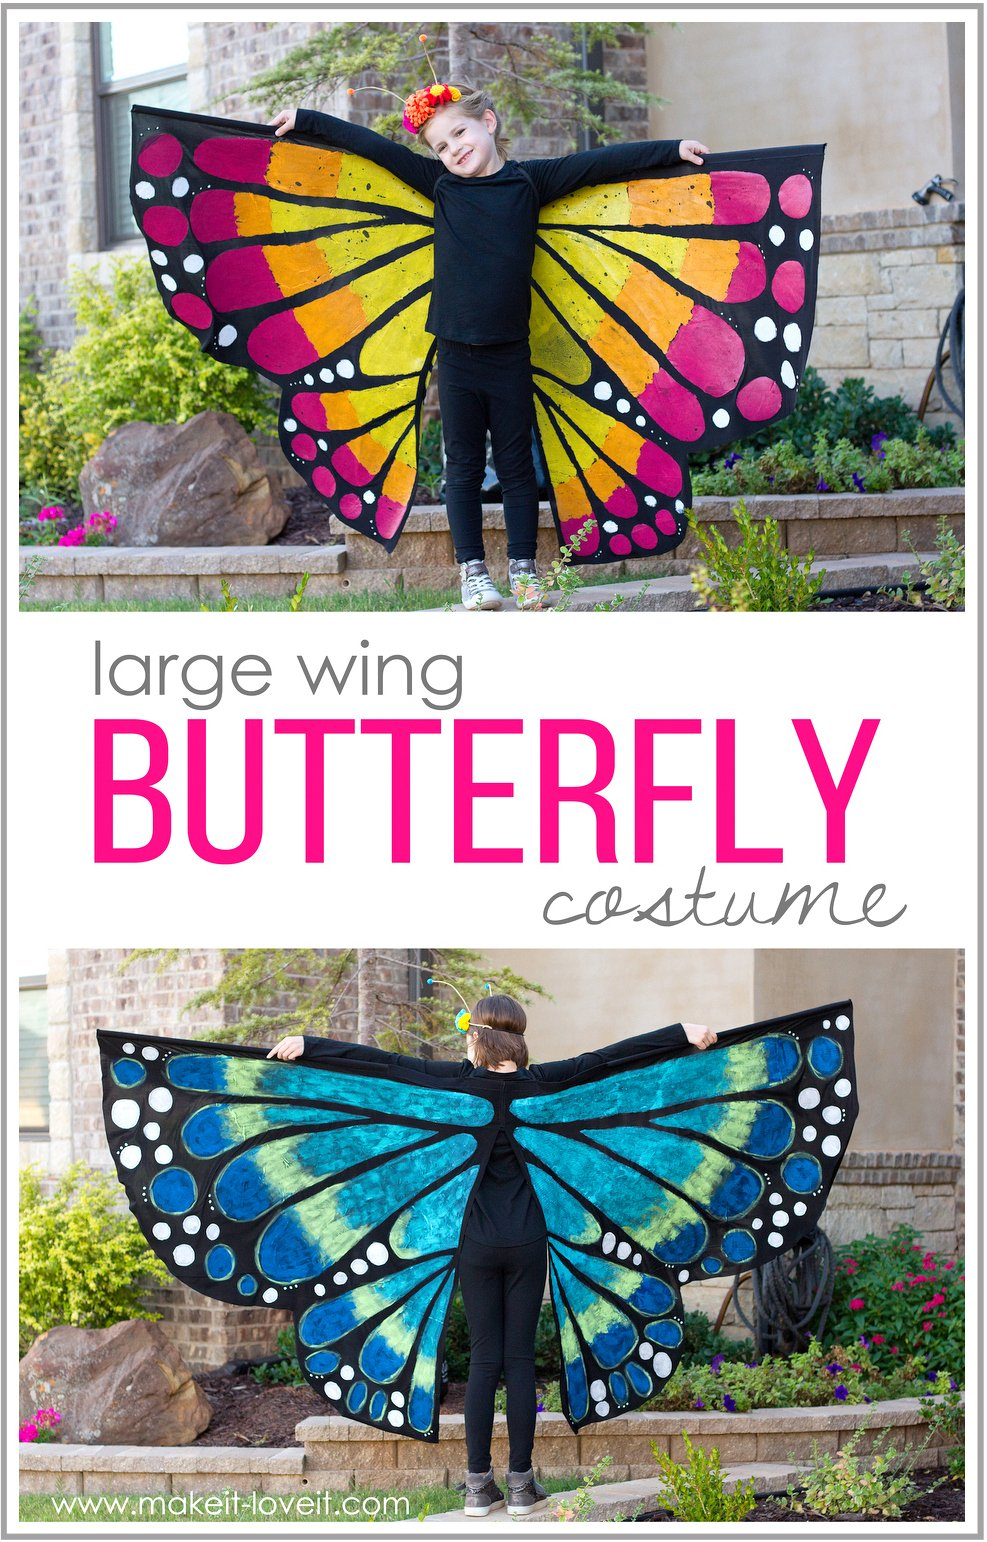 Make a LARGE WING BUTTERFLY Costume